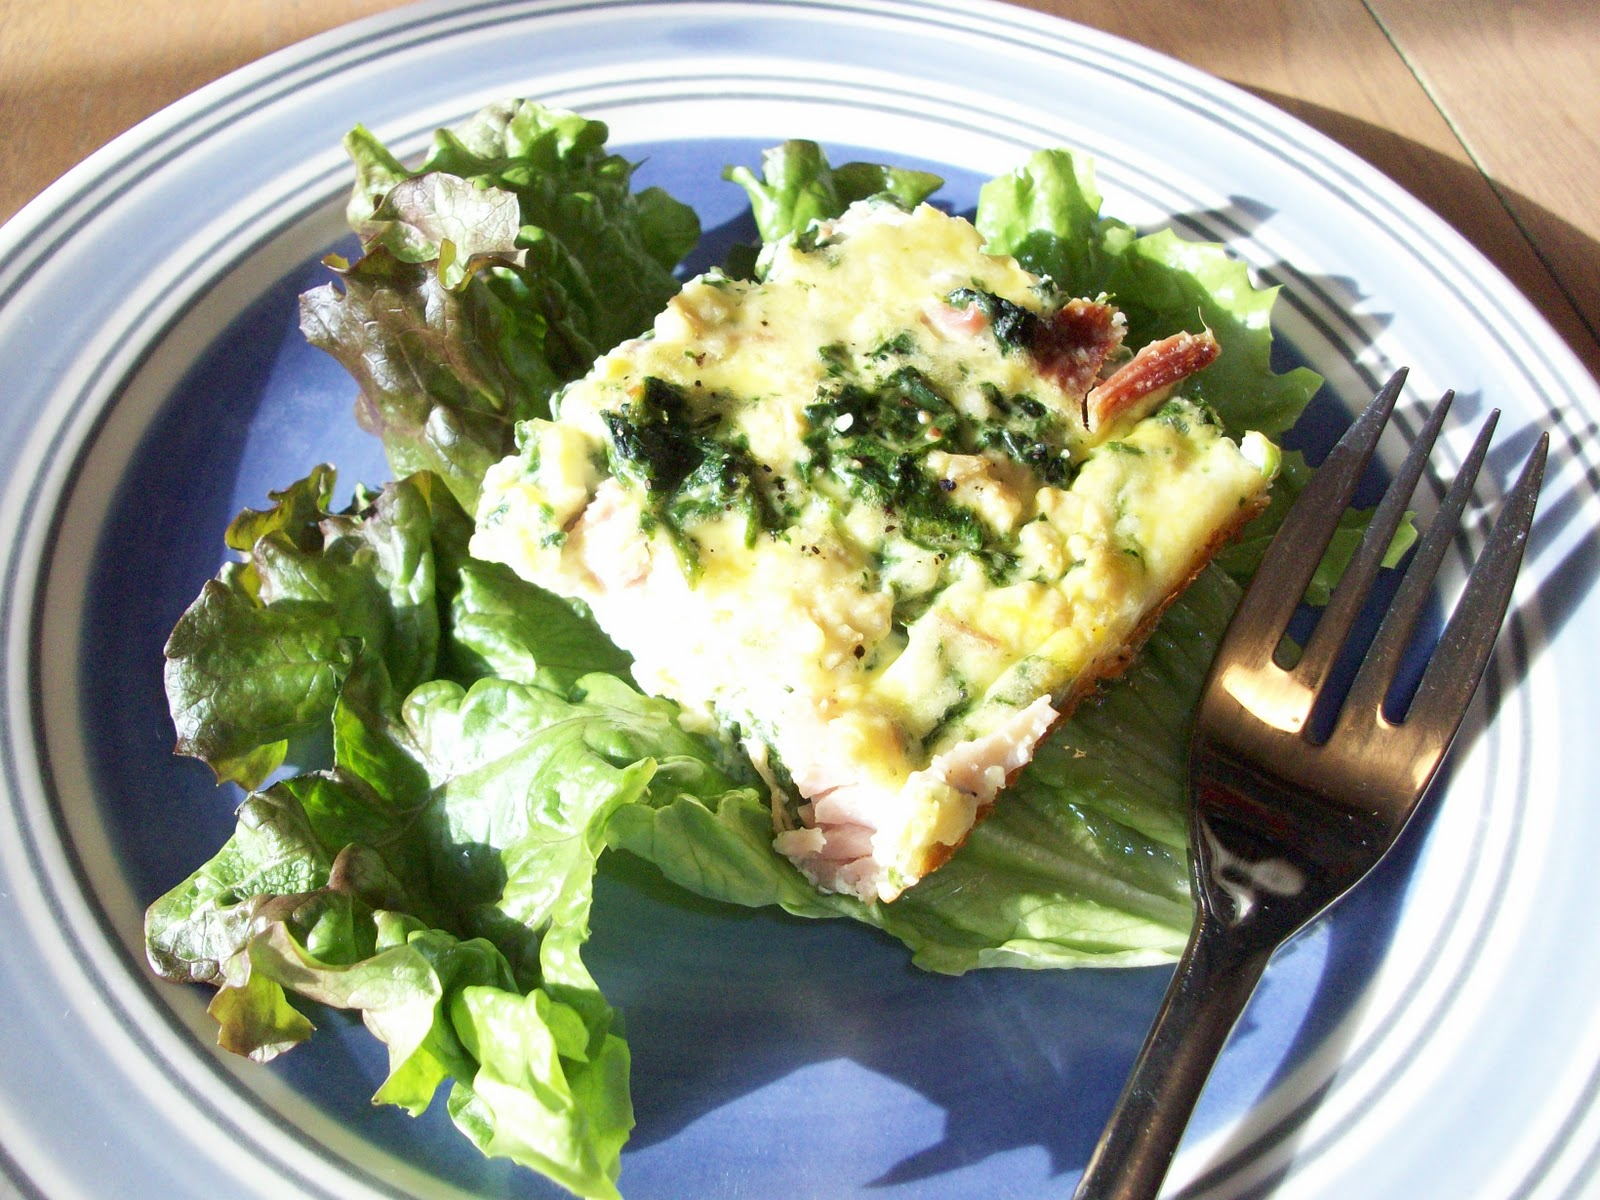 Spinach, Feta Cheese, and Ham Egg Bake | I am Hungry What's for Dinner ...